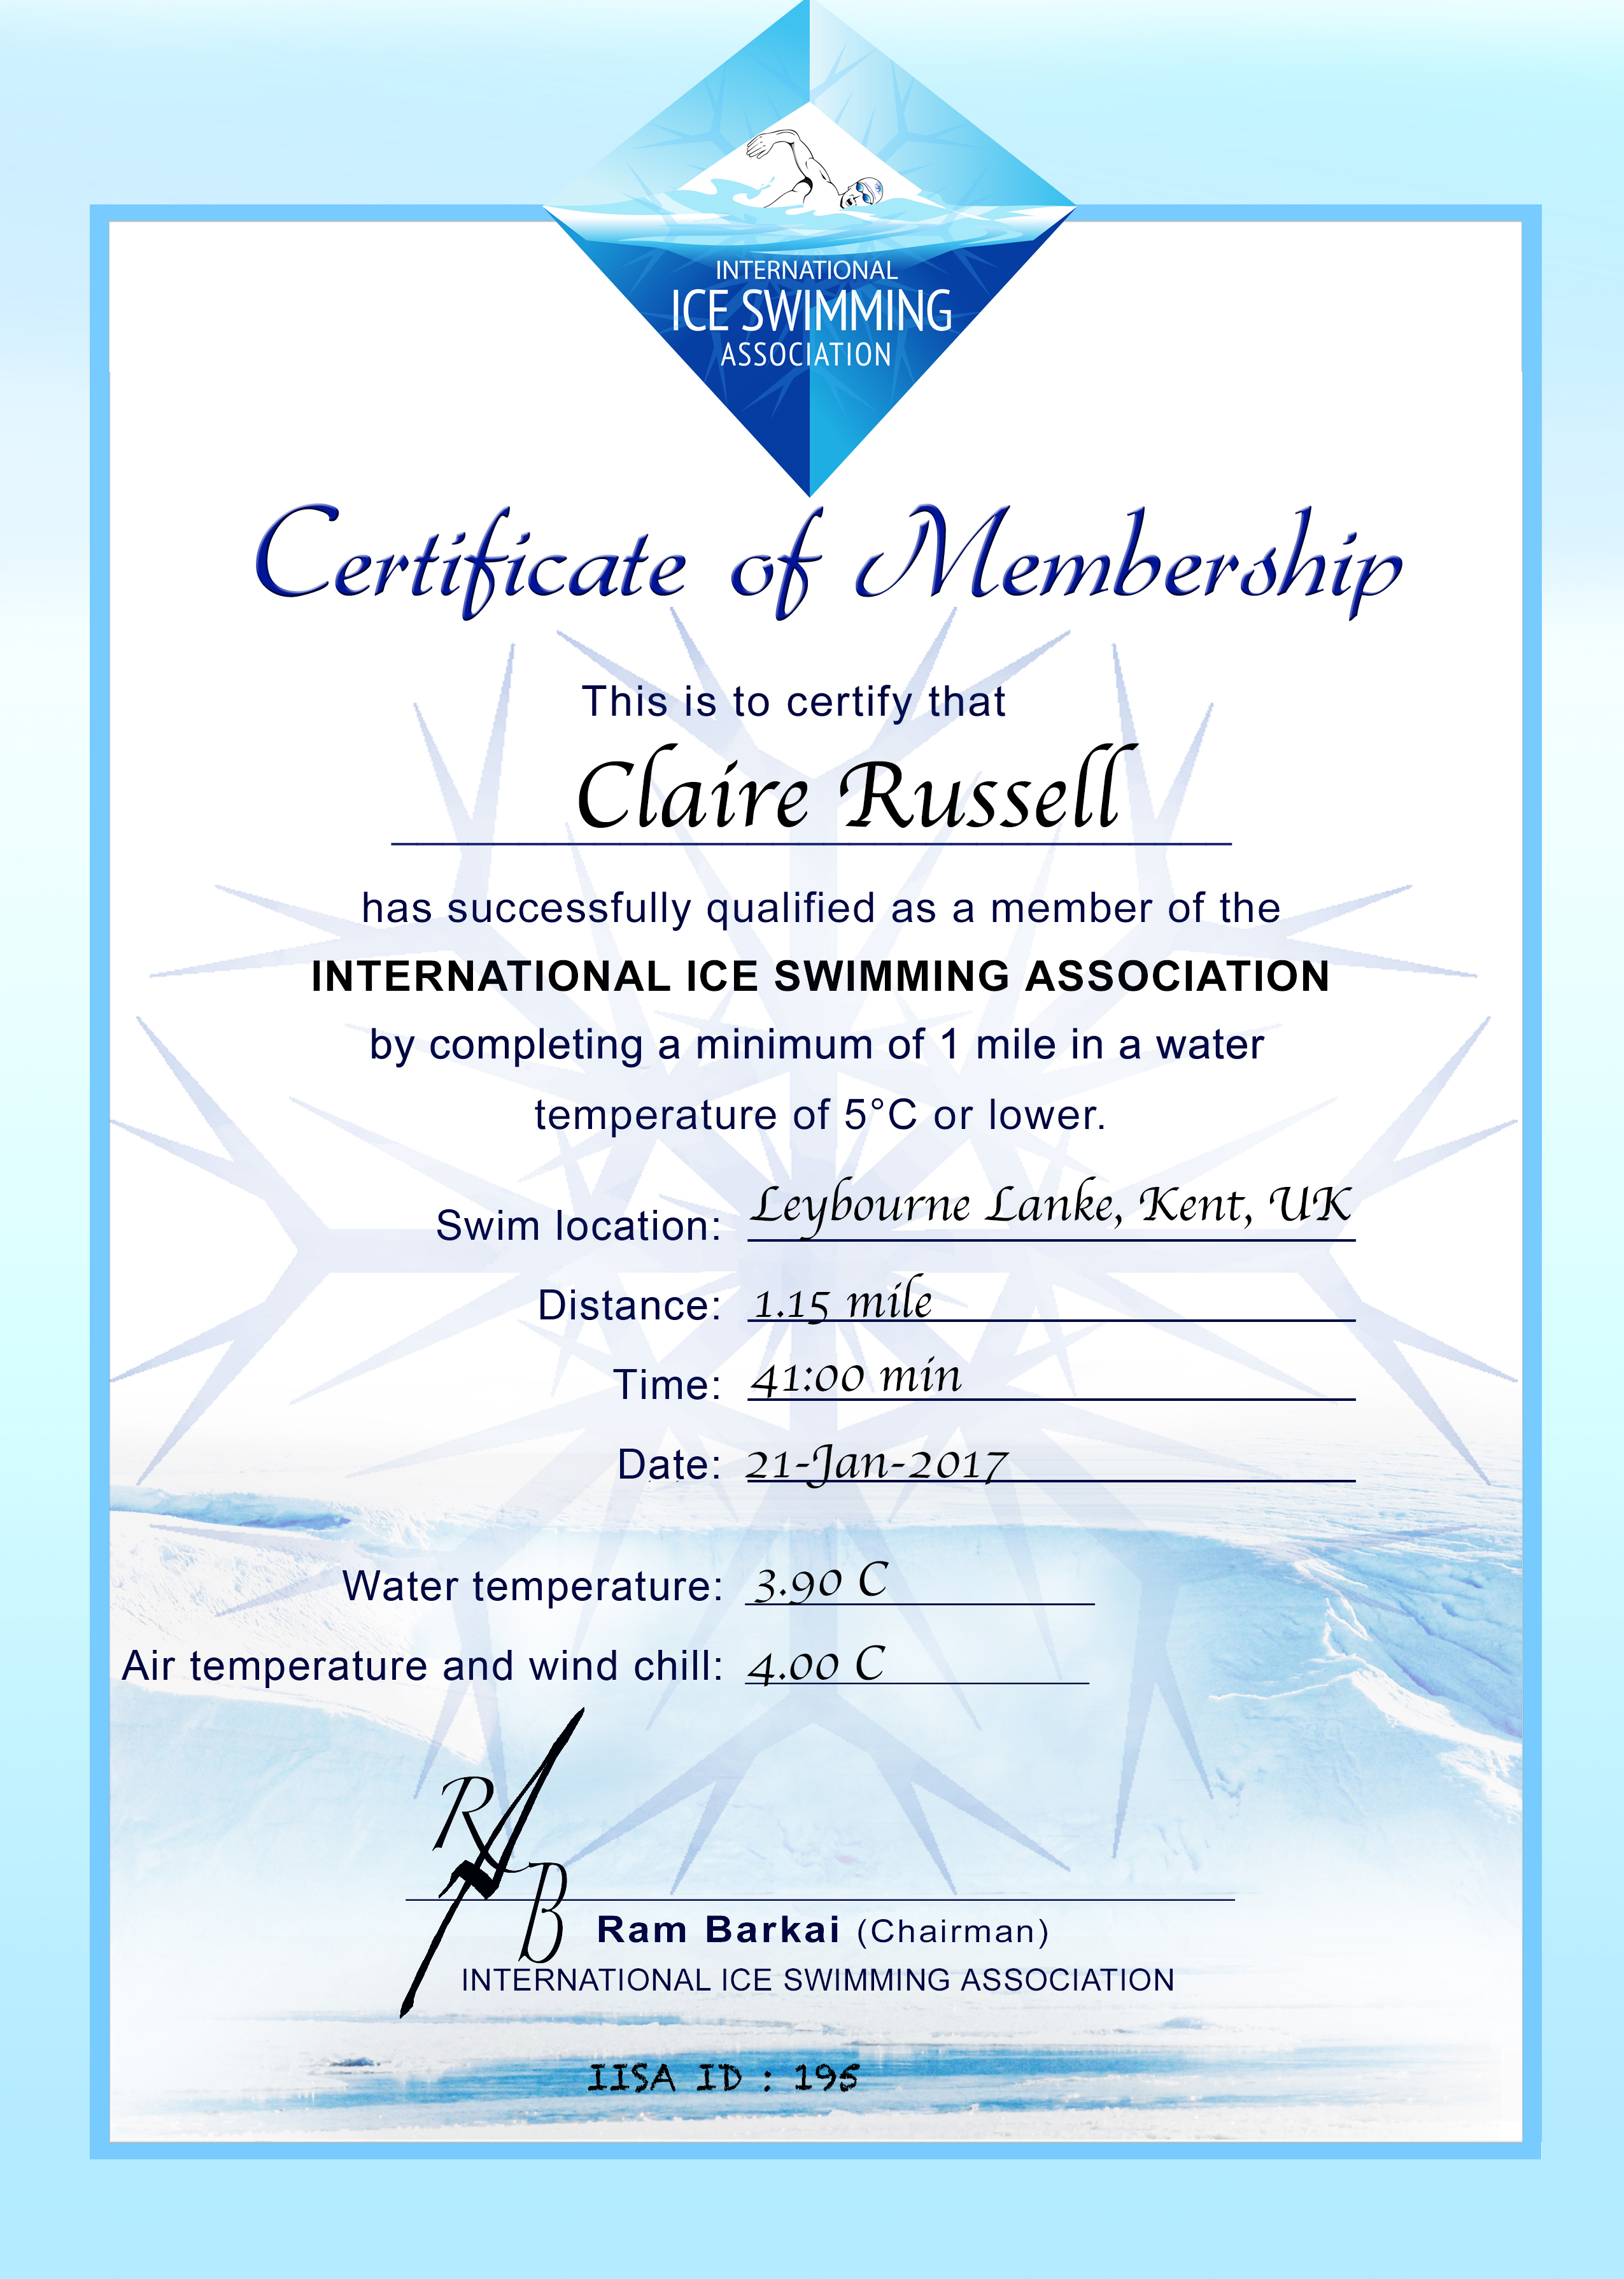 Ice Mile Certificate - Claire Russell